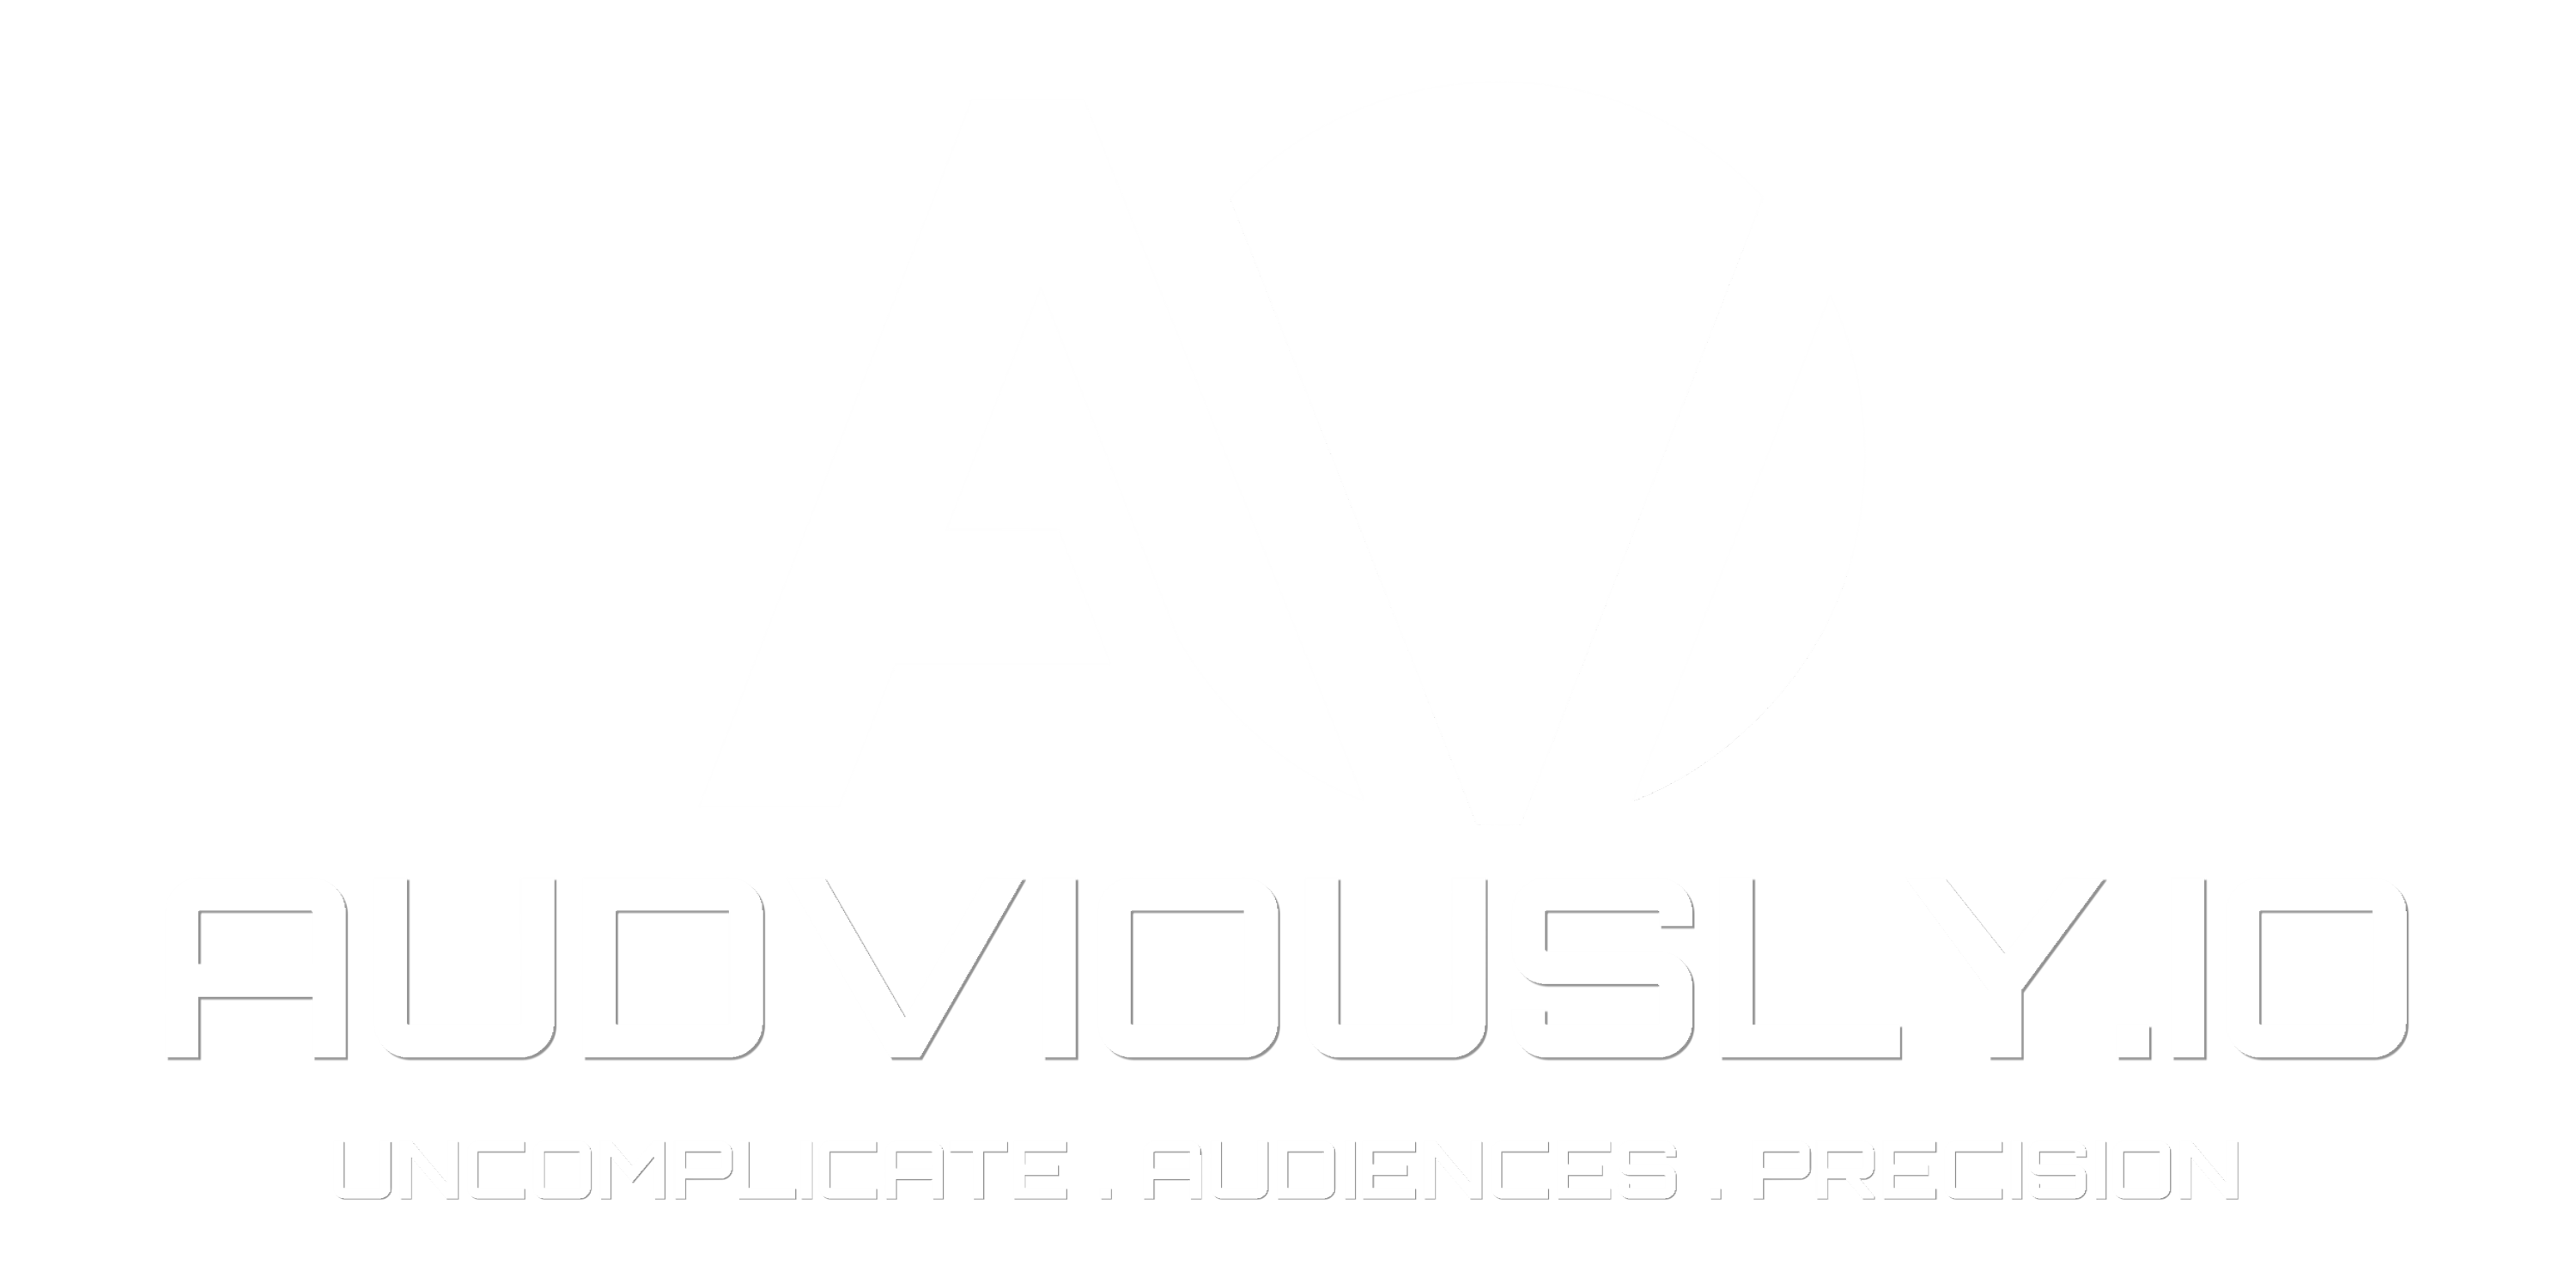 Audviously